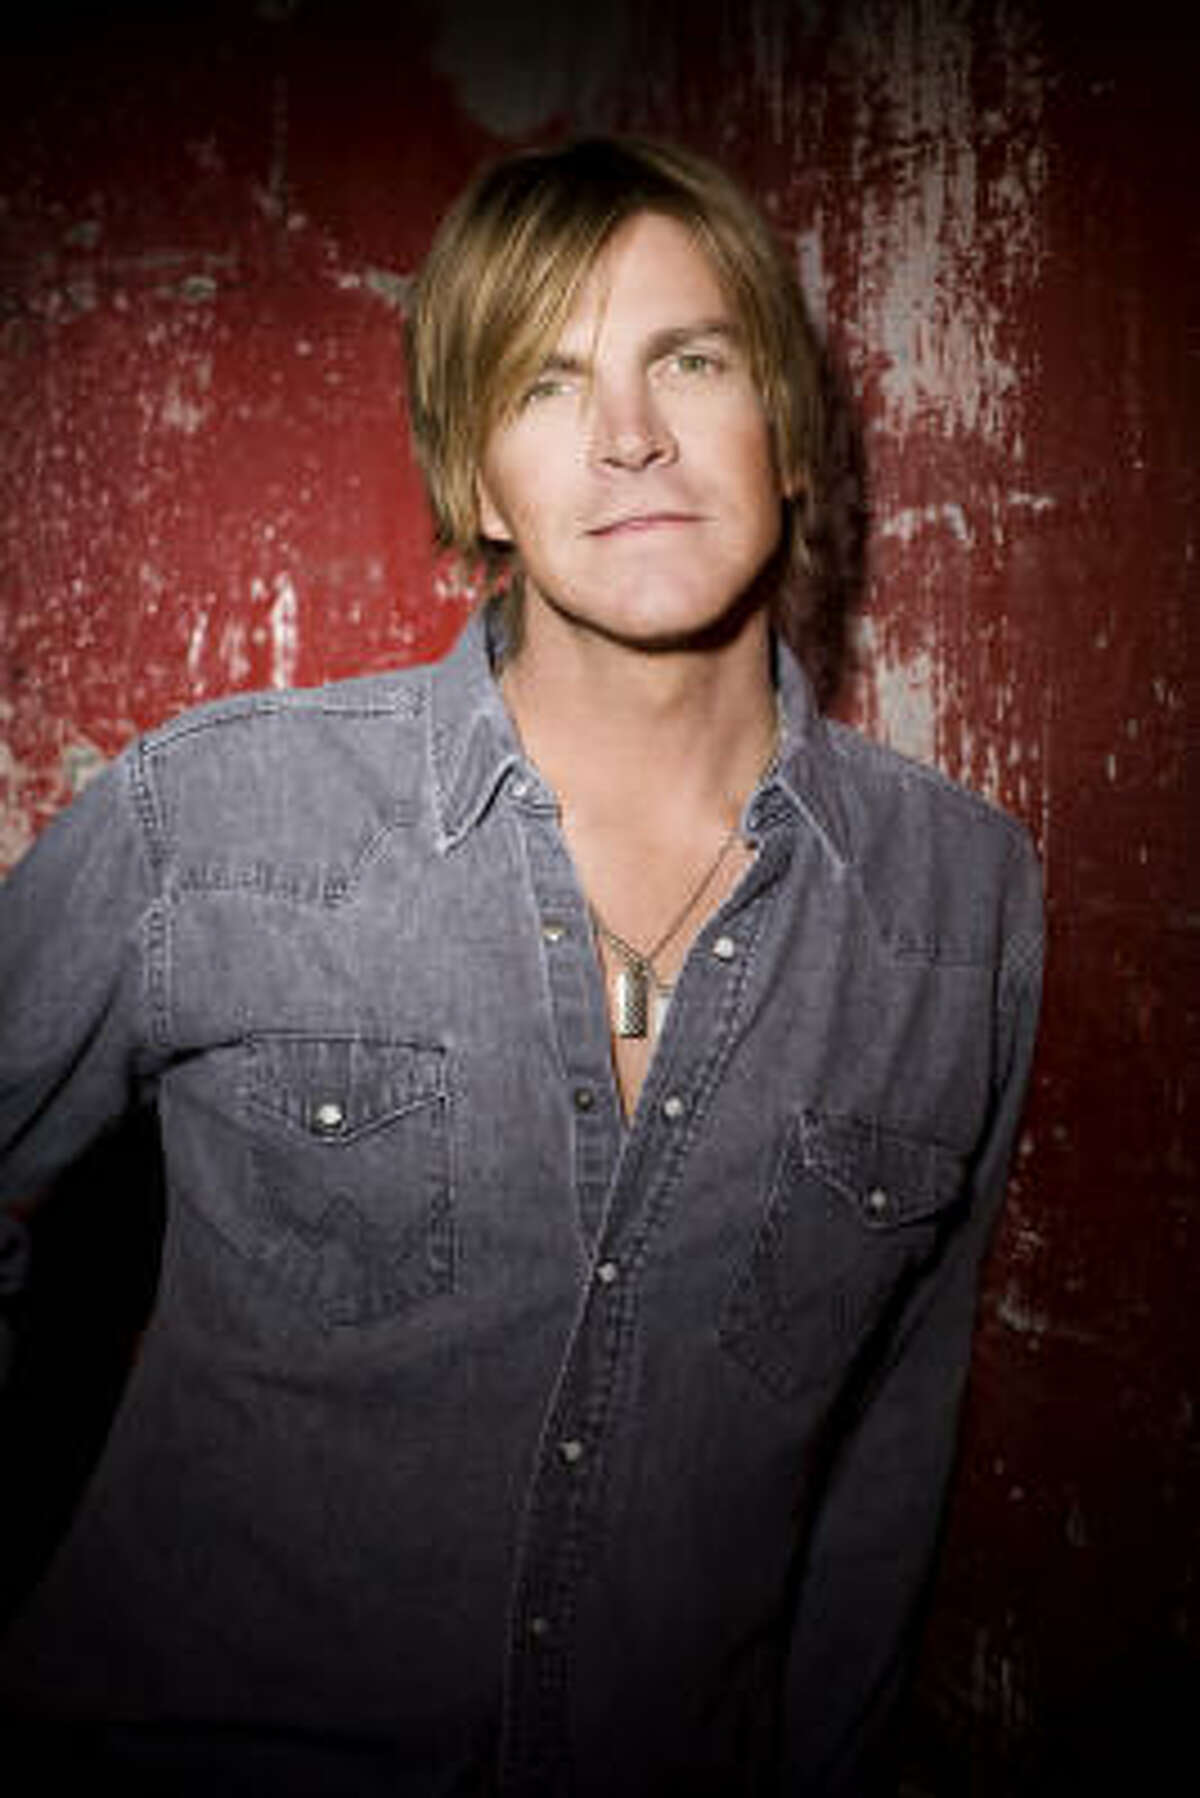 Musician Jack Ingram is pulling out all the stops to promote his latest release, Big Dreams & High Hopes.